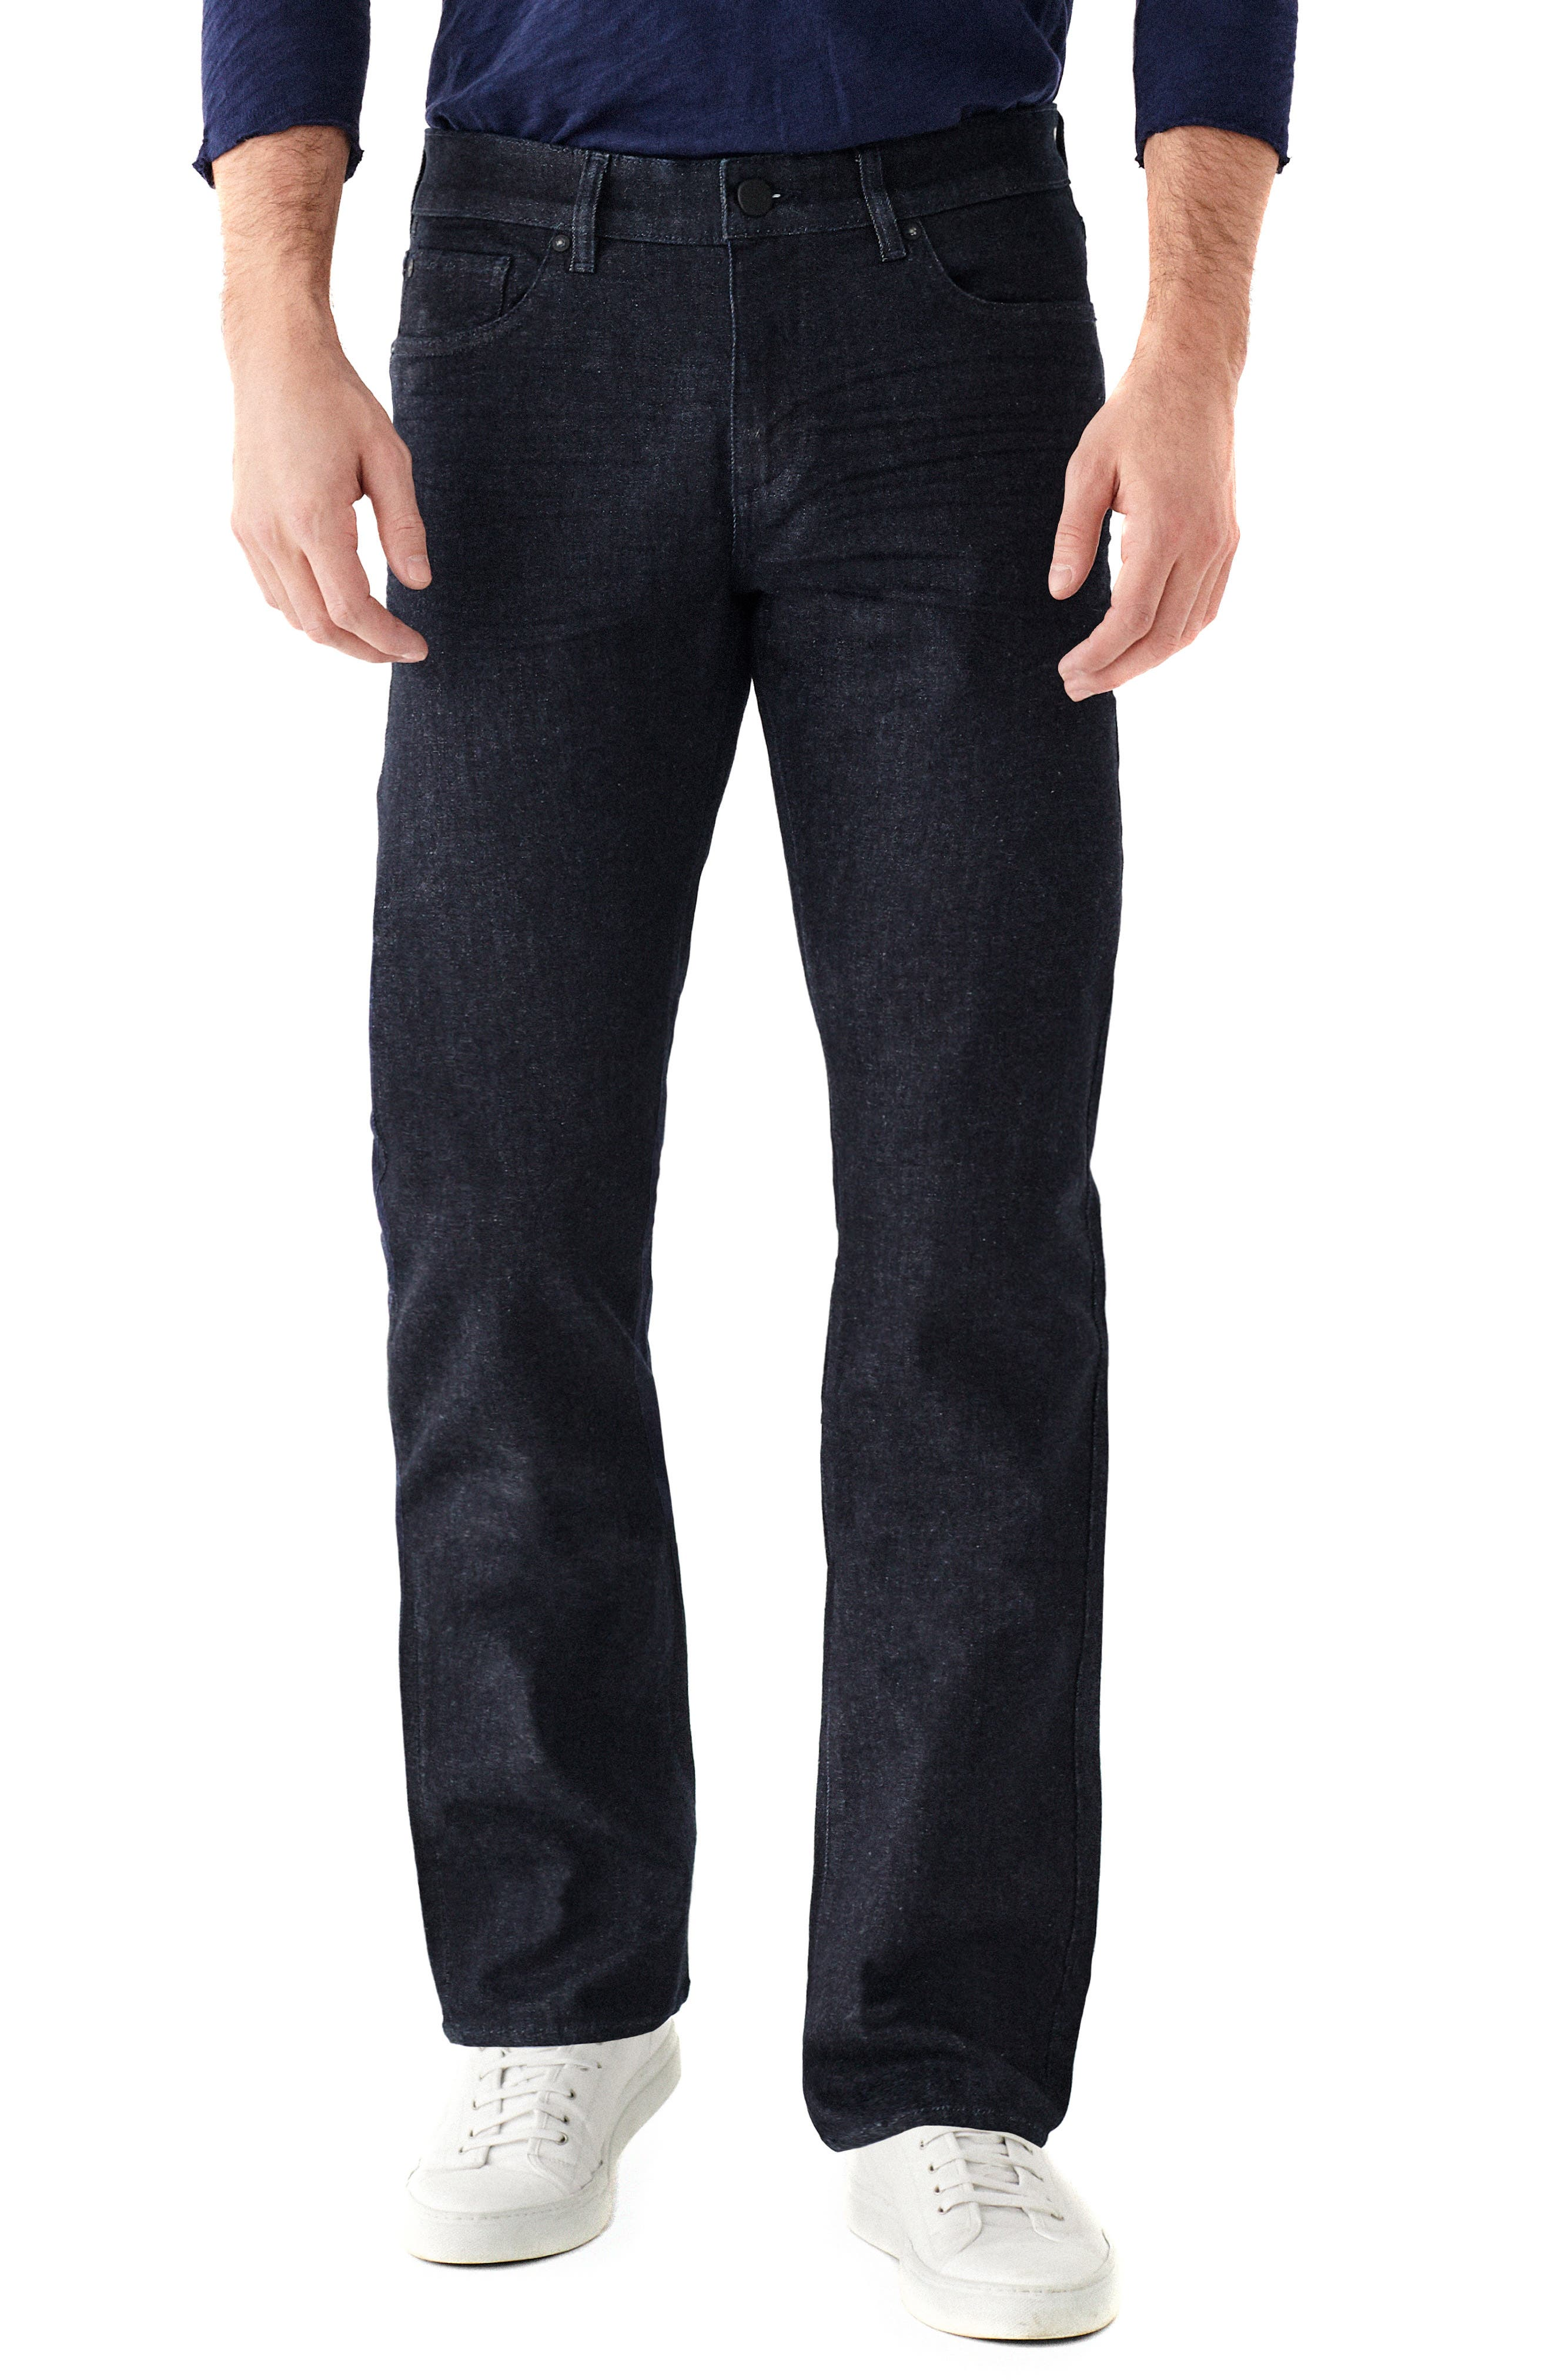 1961 Avery Athletic Relaxed Straight Leg Jeans